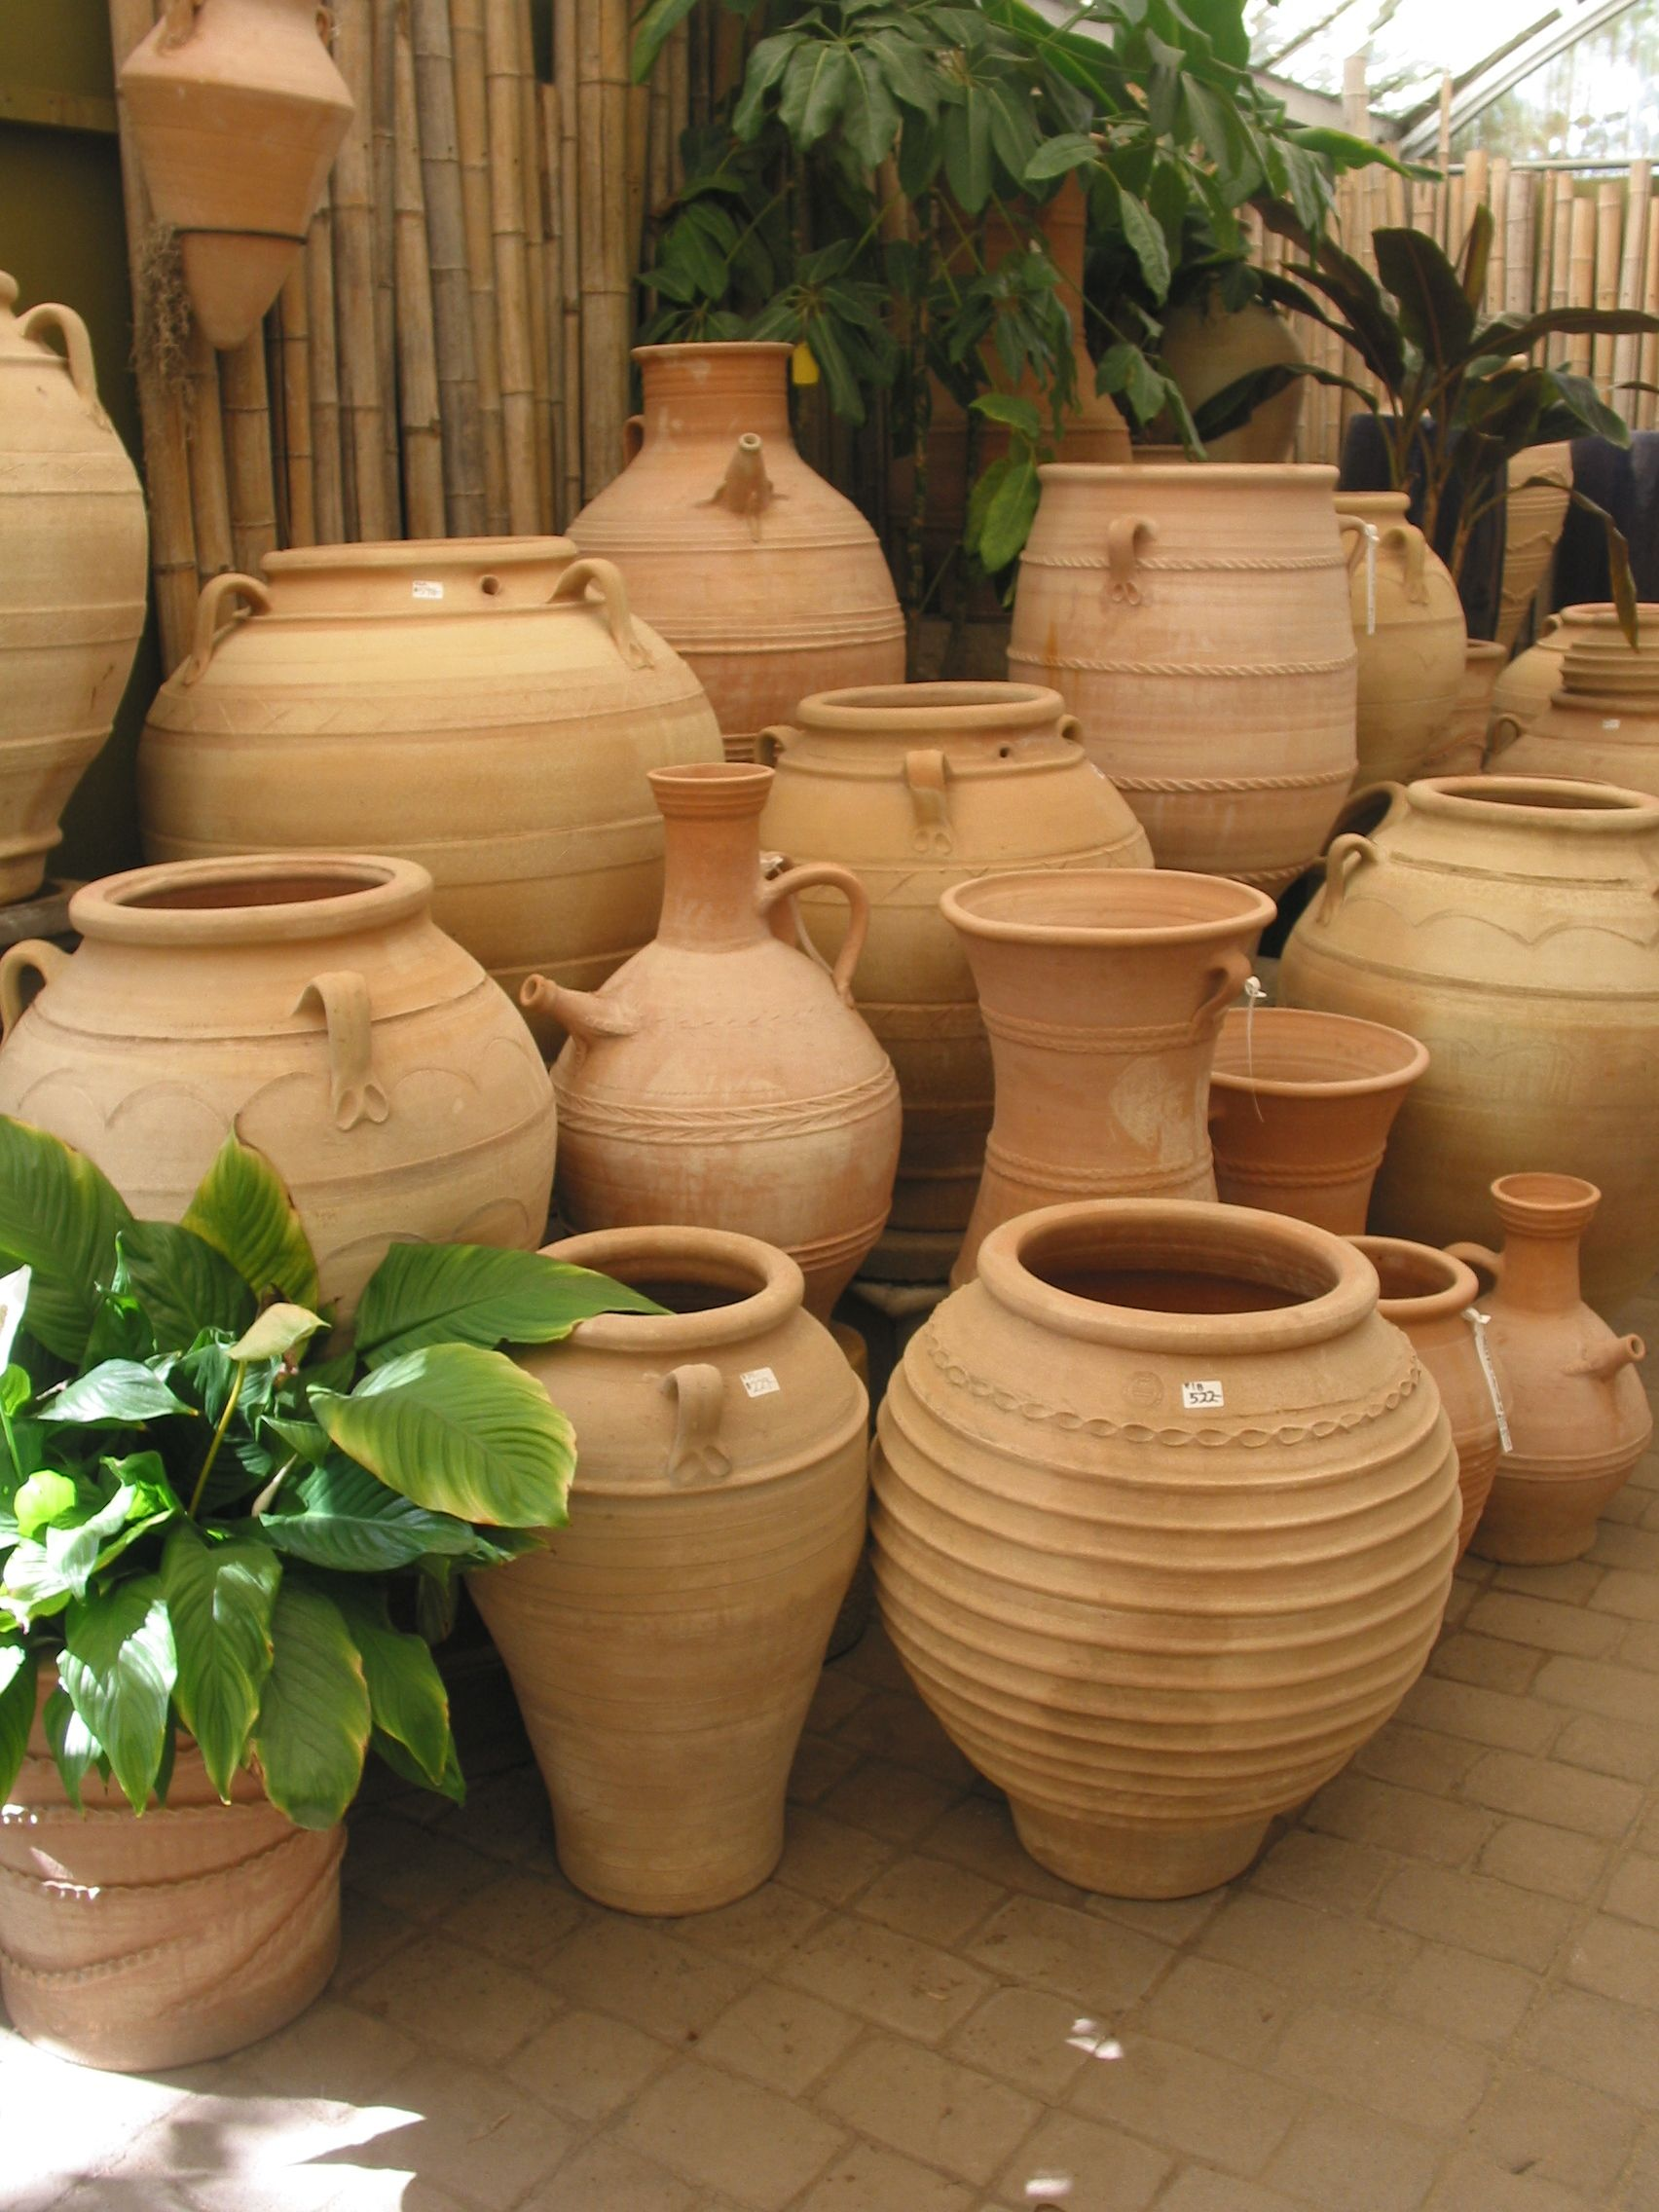 We Have A Large Variety Of Greek Terracotta Pots And Jars Perfect For Any Sized Garden Large Terracotta Pots Terracotta Plant Pots Terracotta Pots